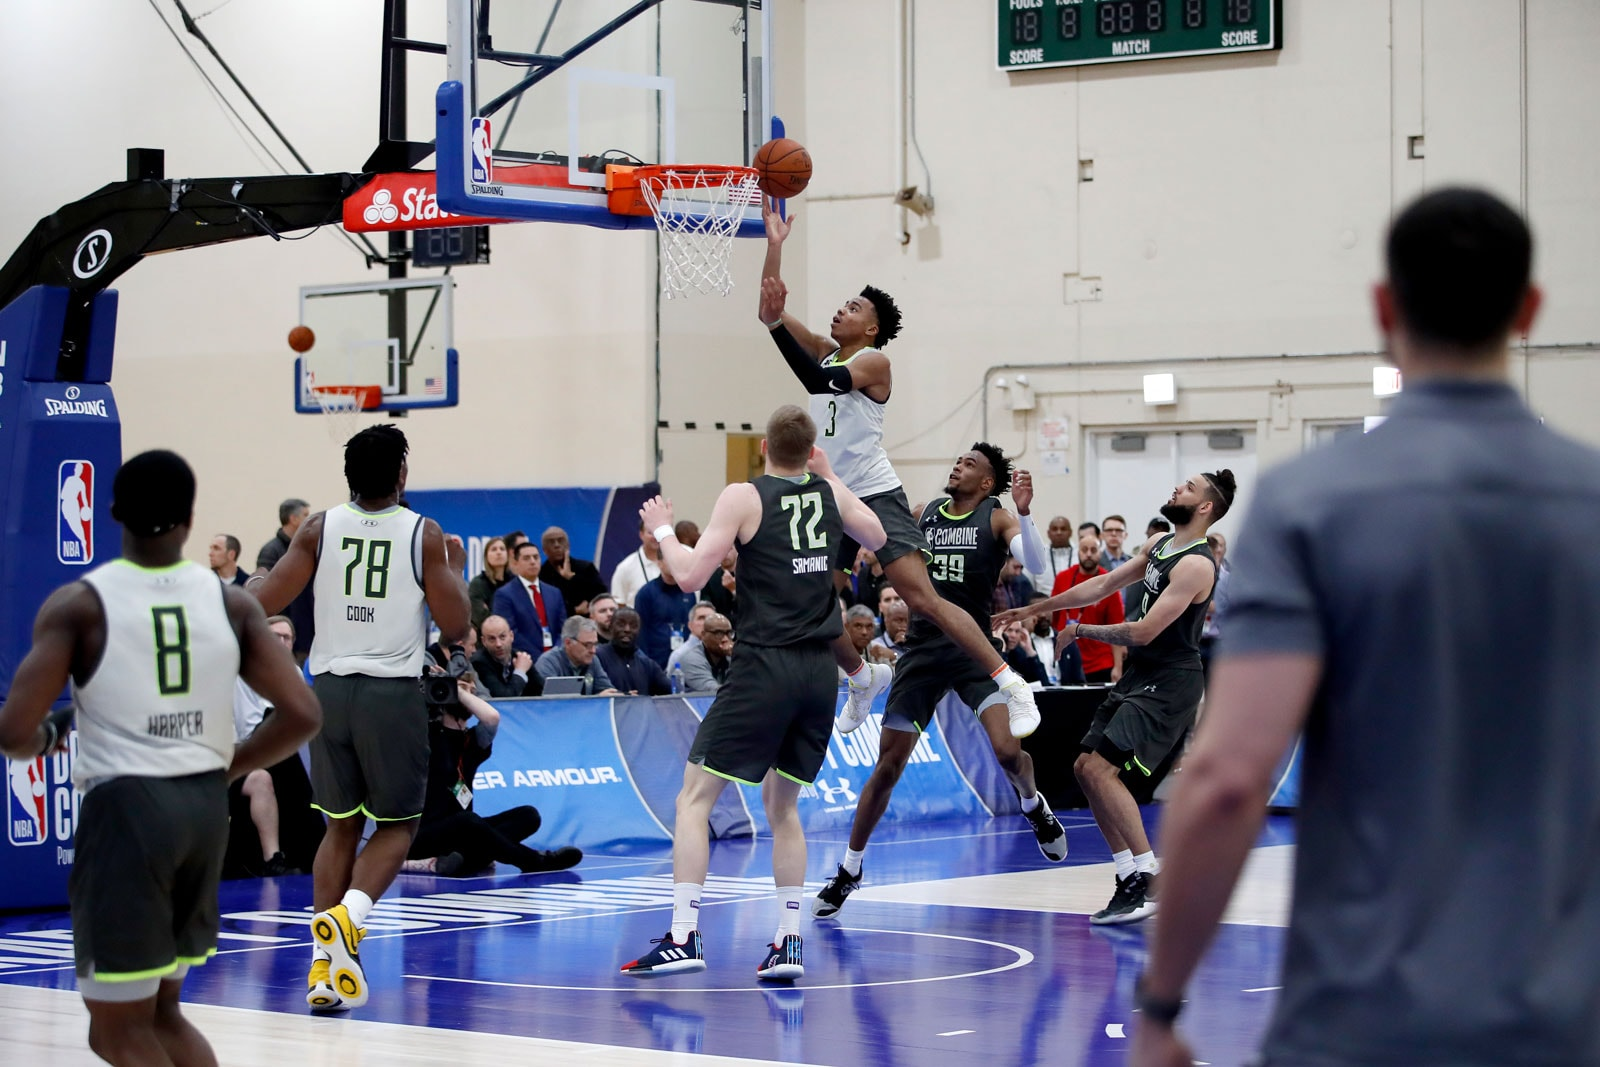 Jalen Lecque #3 shoots the ball in traffic during a scrimmage during Day One of the 2019 NBA Draft Combine on May 16, 2019 at the Quest MultiSport Complex in Chicago, Illinois.